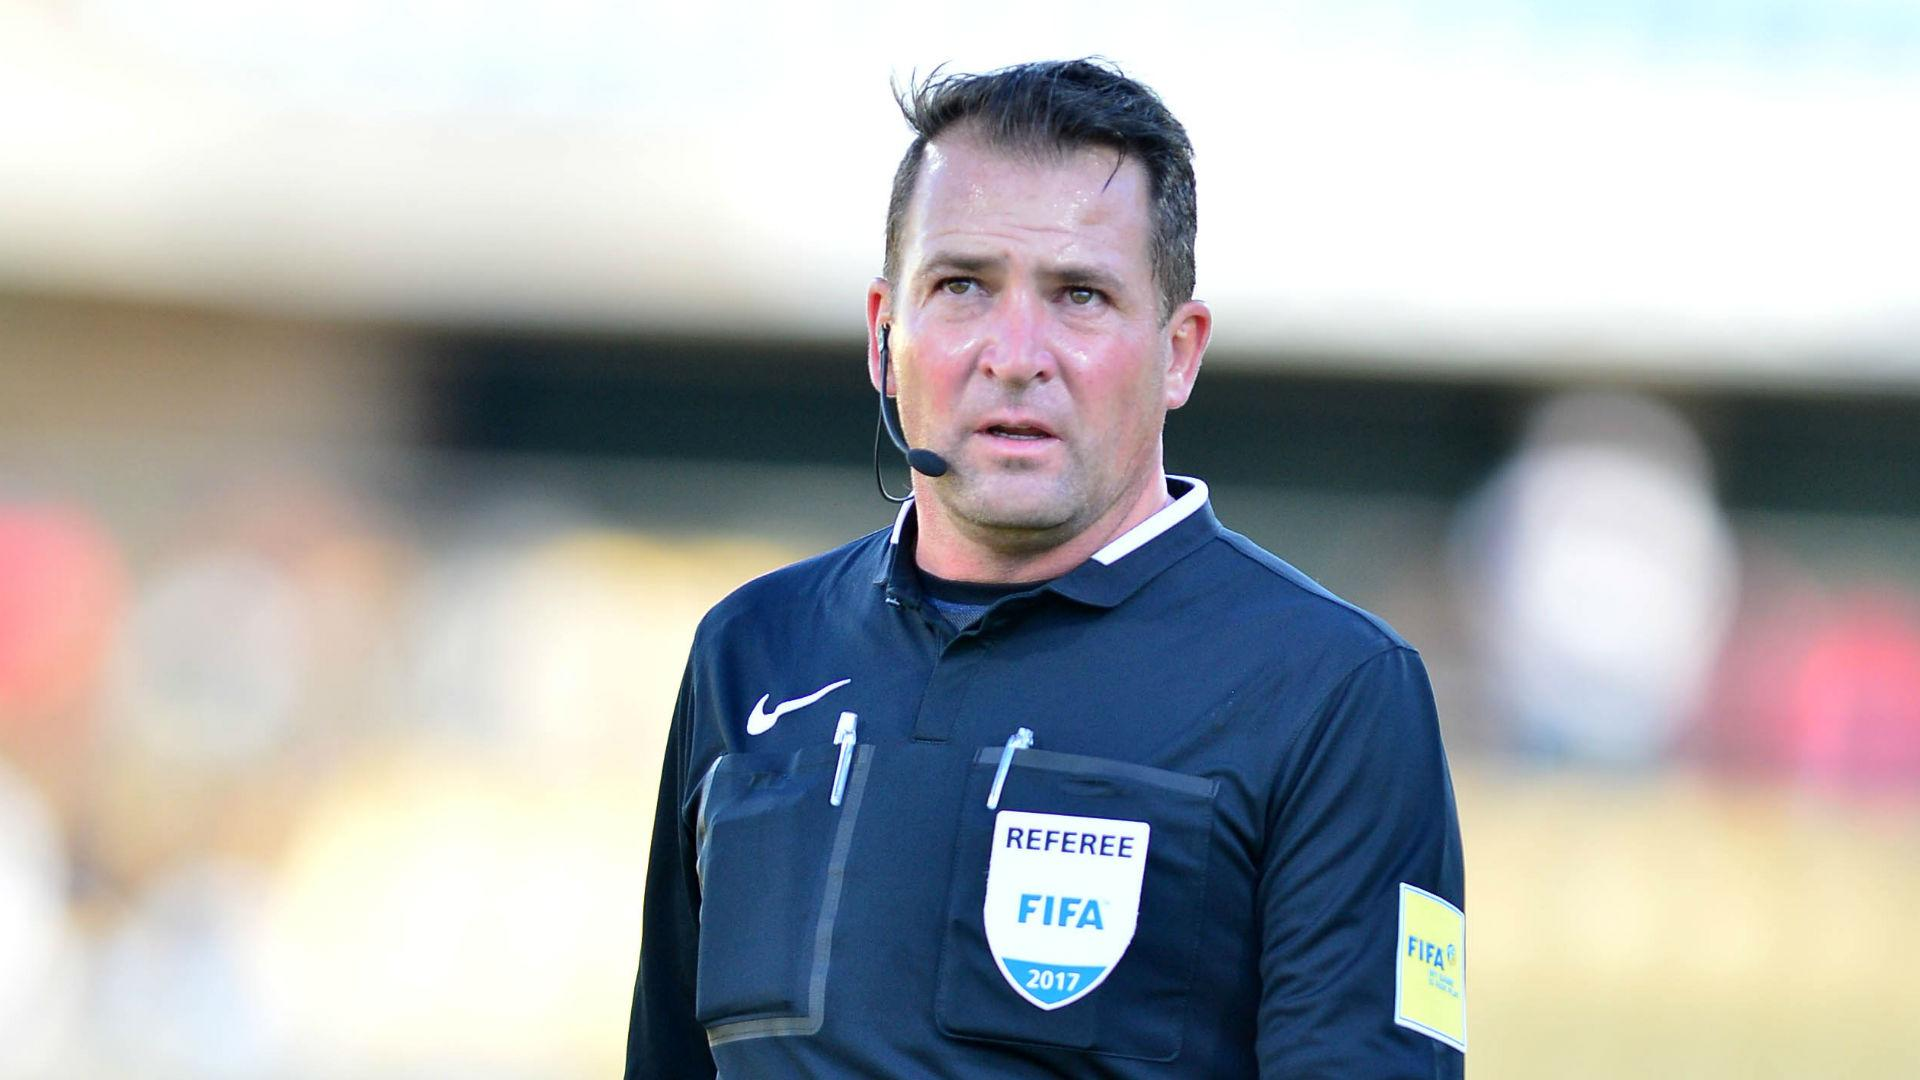 South African referee Daniel Bennett hangs his whistle from the international scene